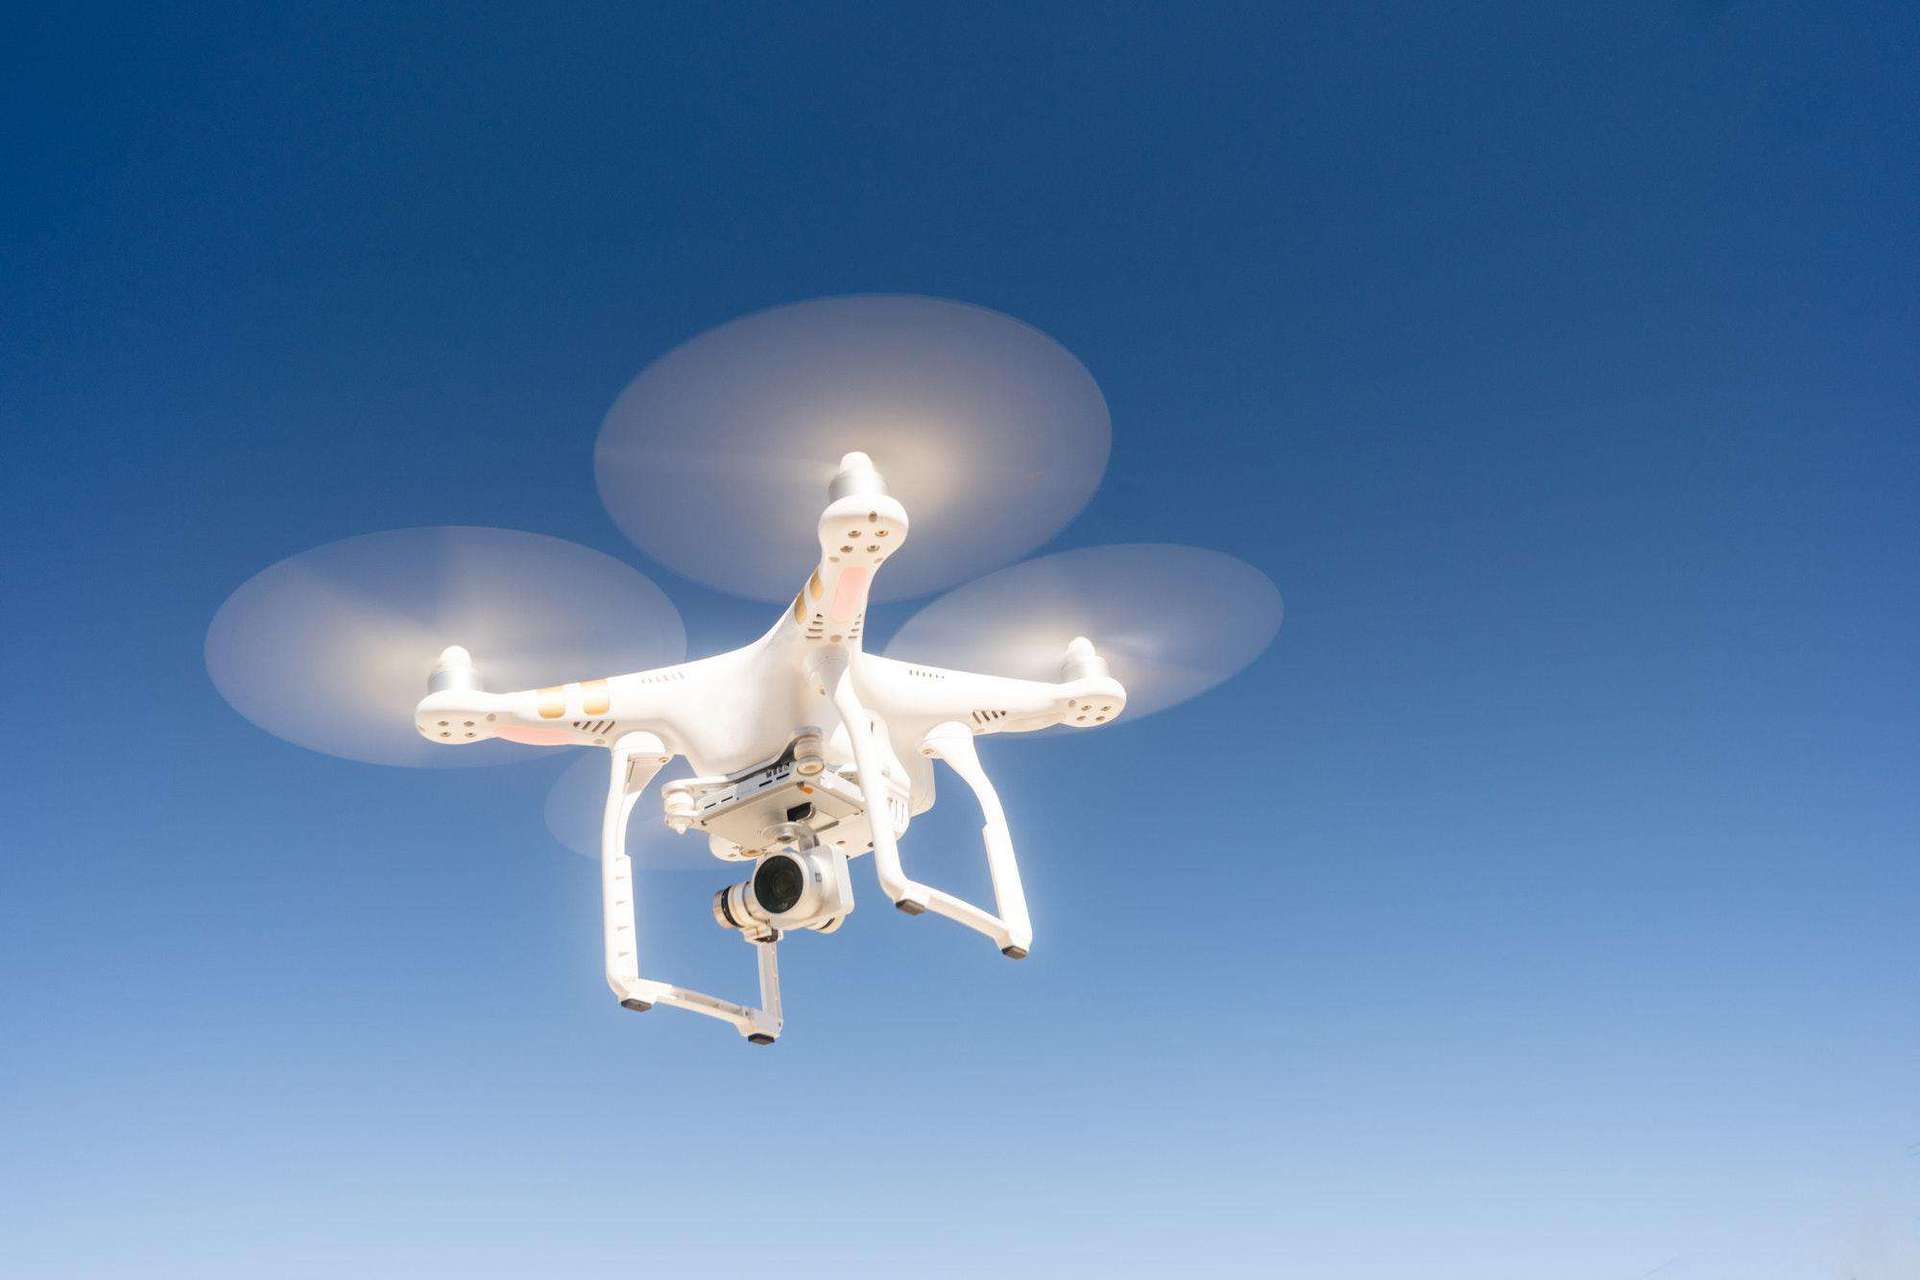 White Quadcopter Drone Flying Hovering Blue Sky